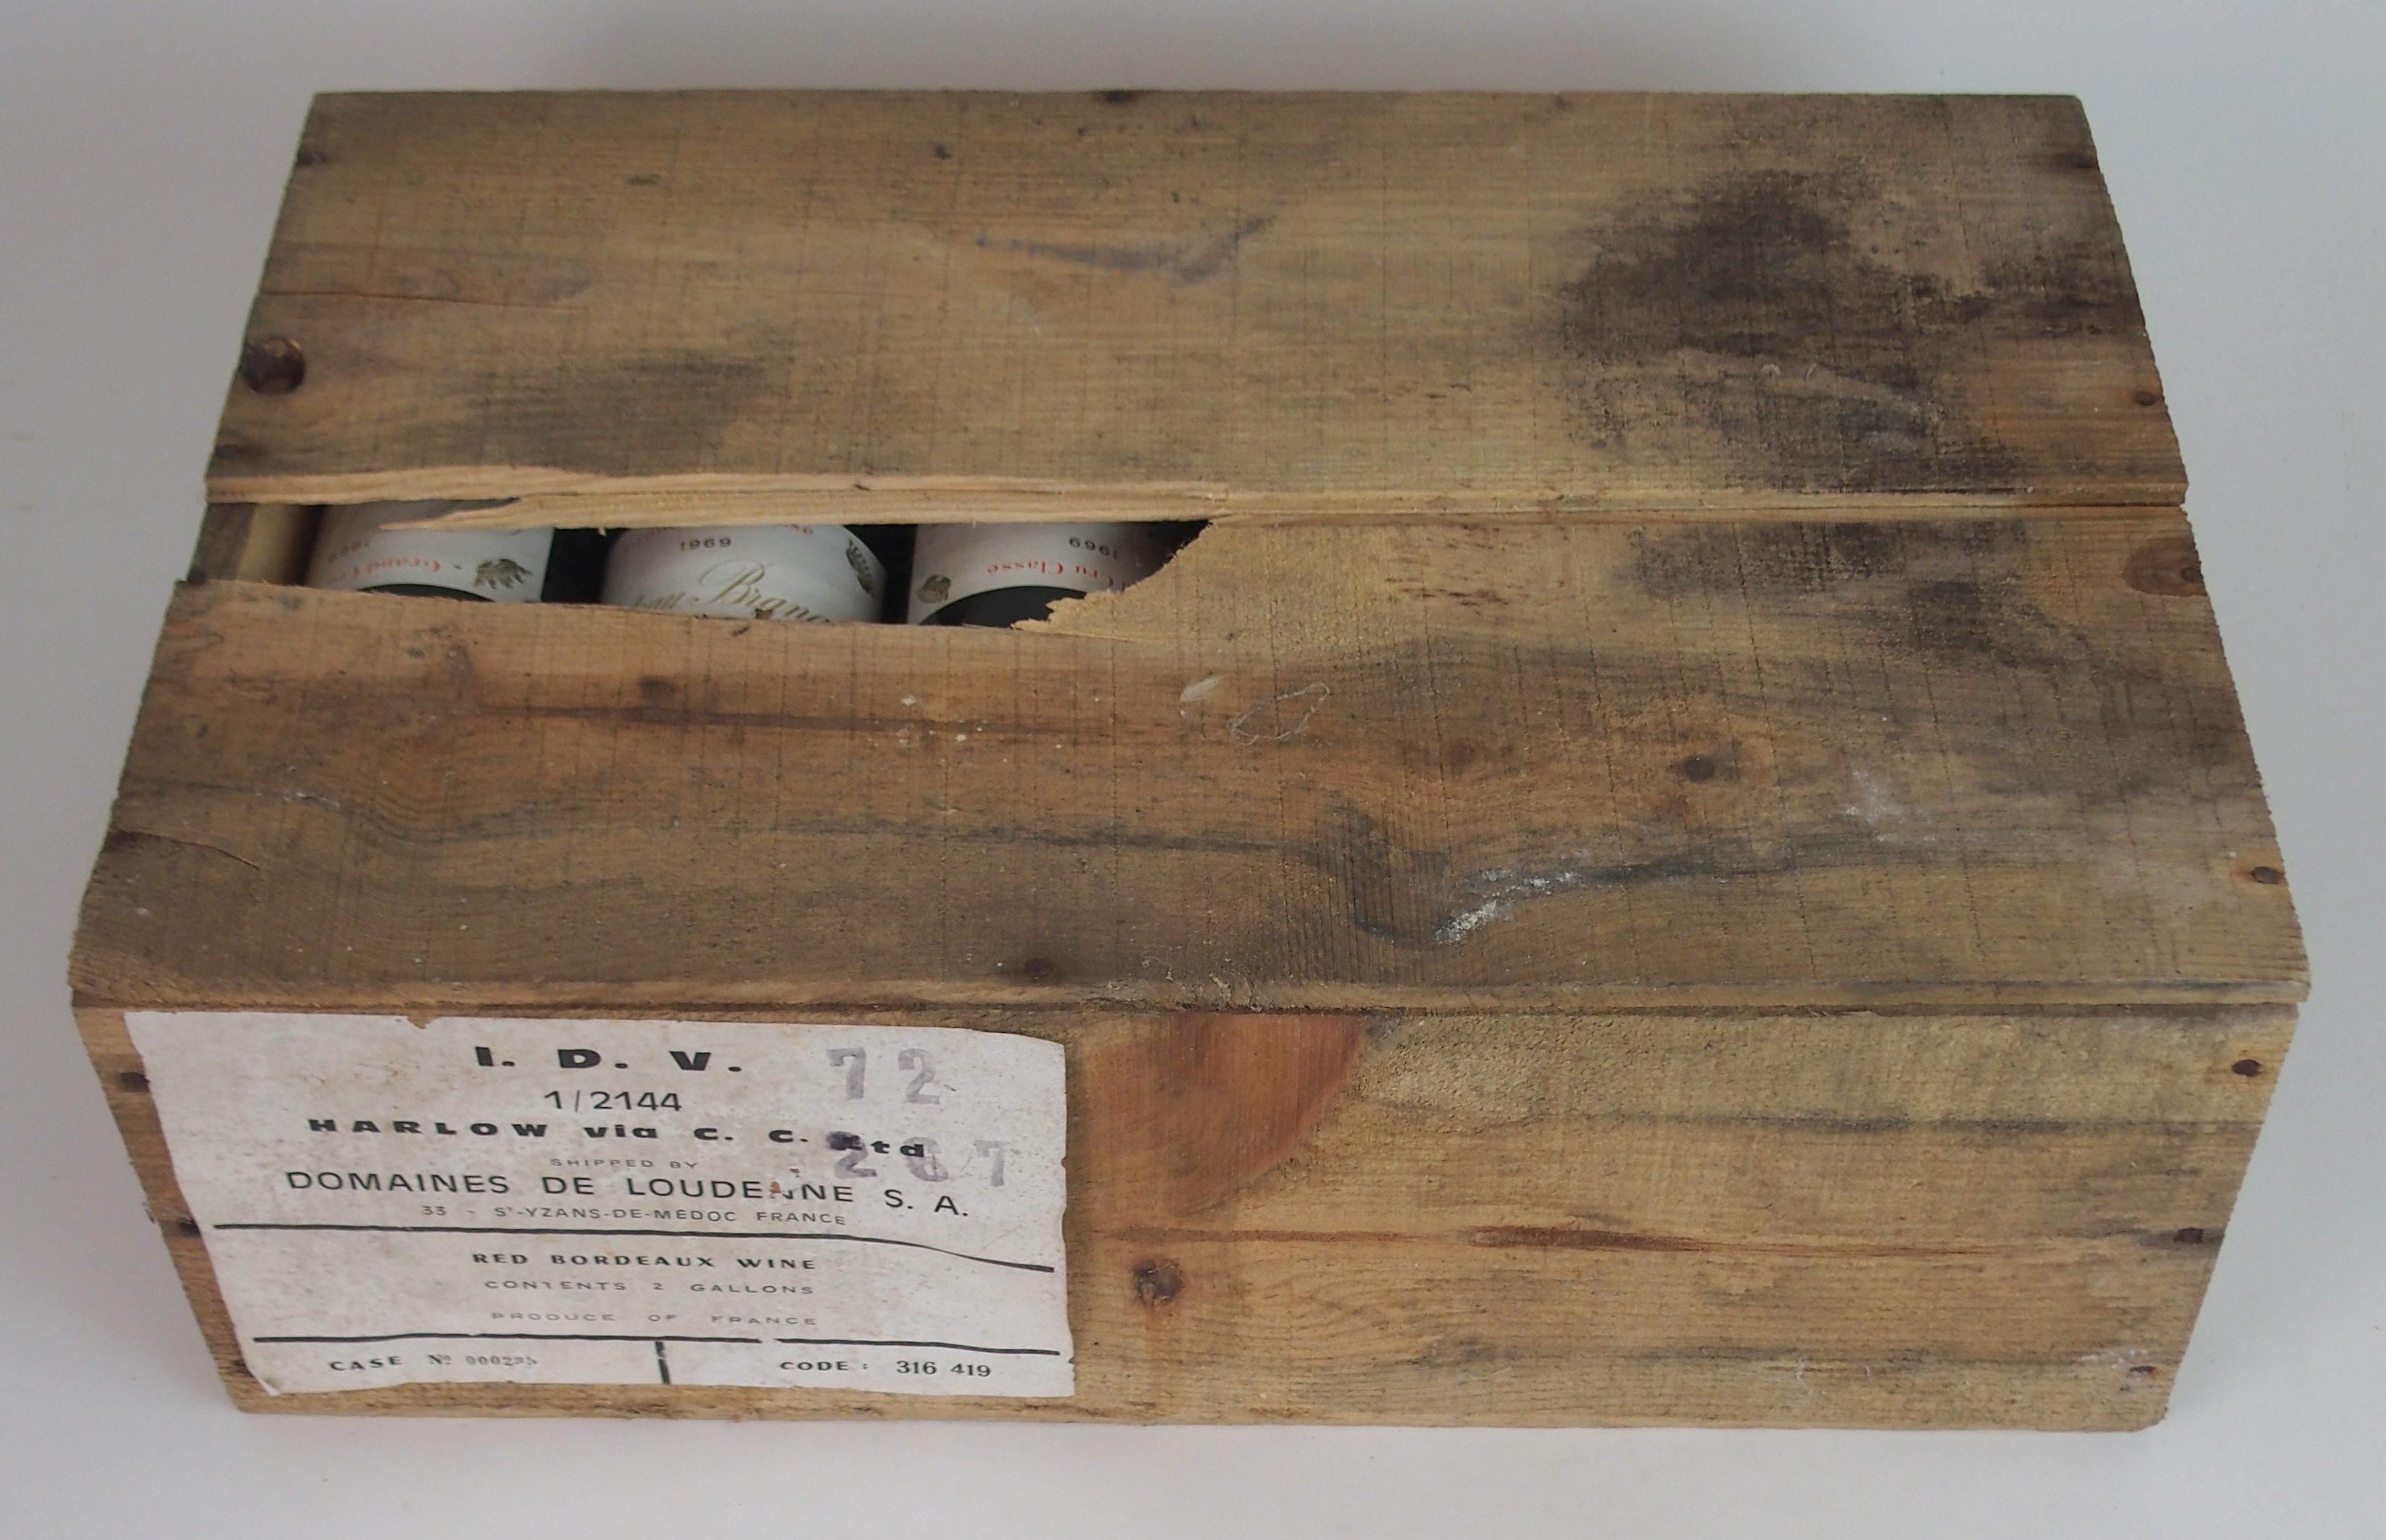 A CASE OF CHATEAU BRANAIRE DULUC DUCRU, ST. JULIEN, 1969 in wooden case Condition Report: